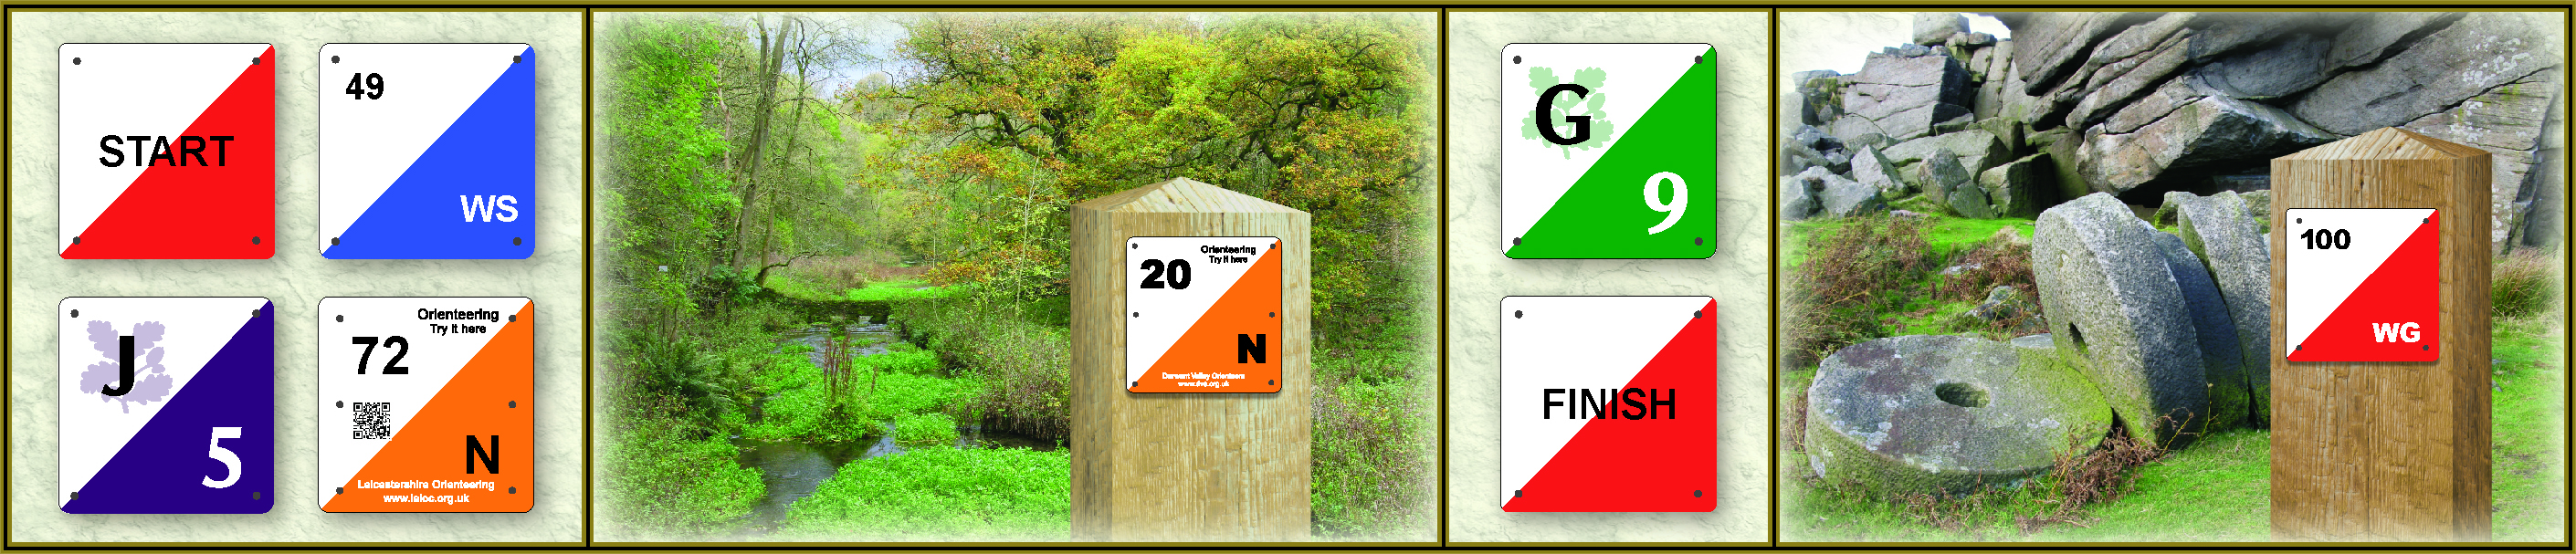 orienteering signs and markers